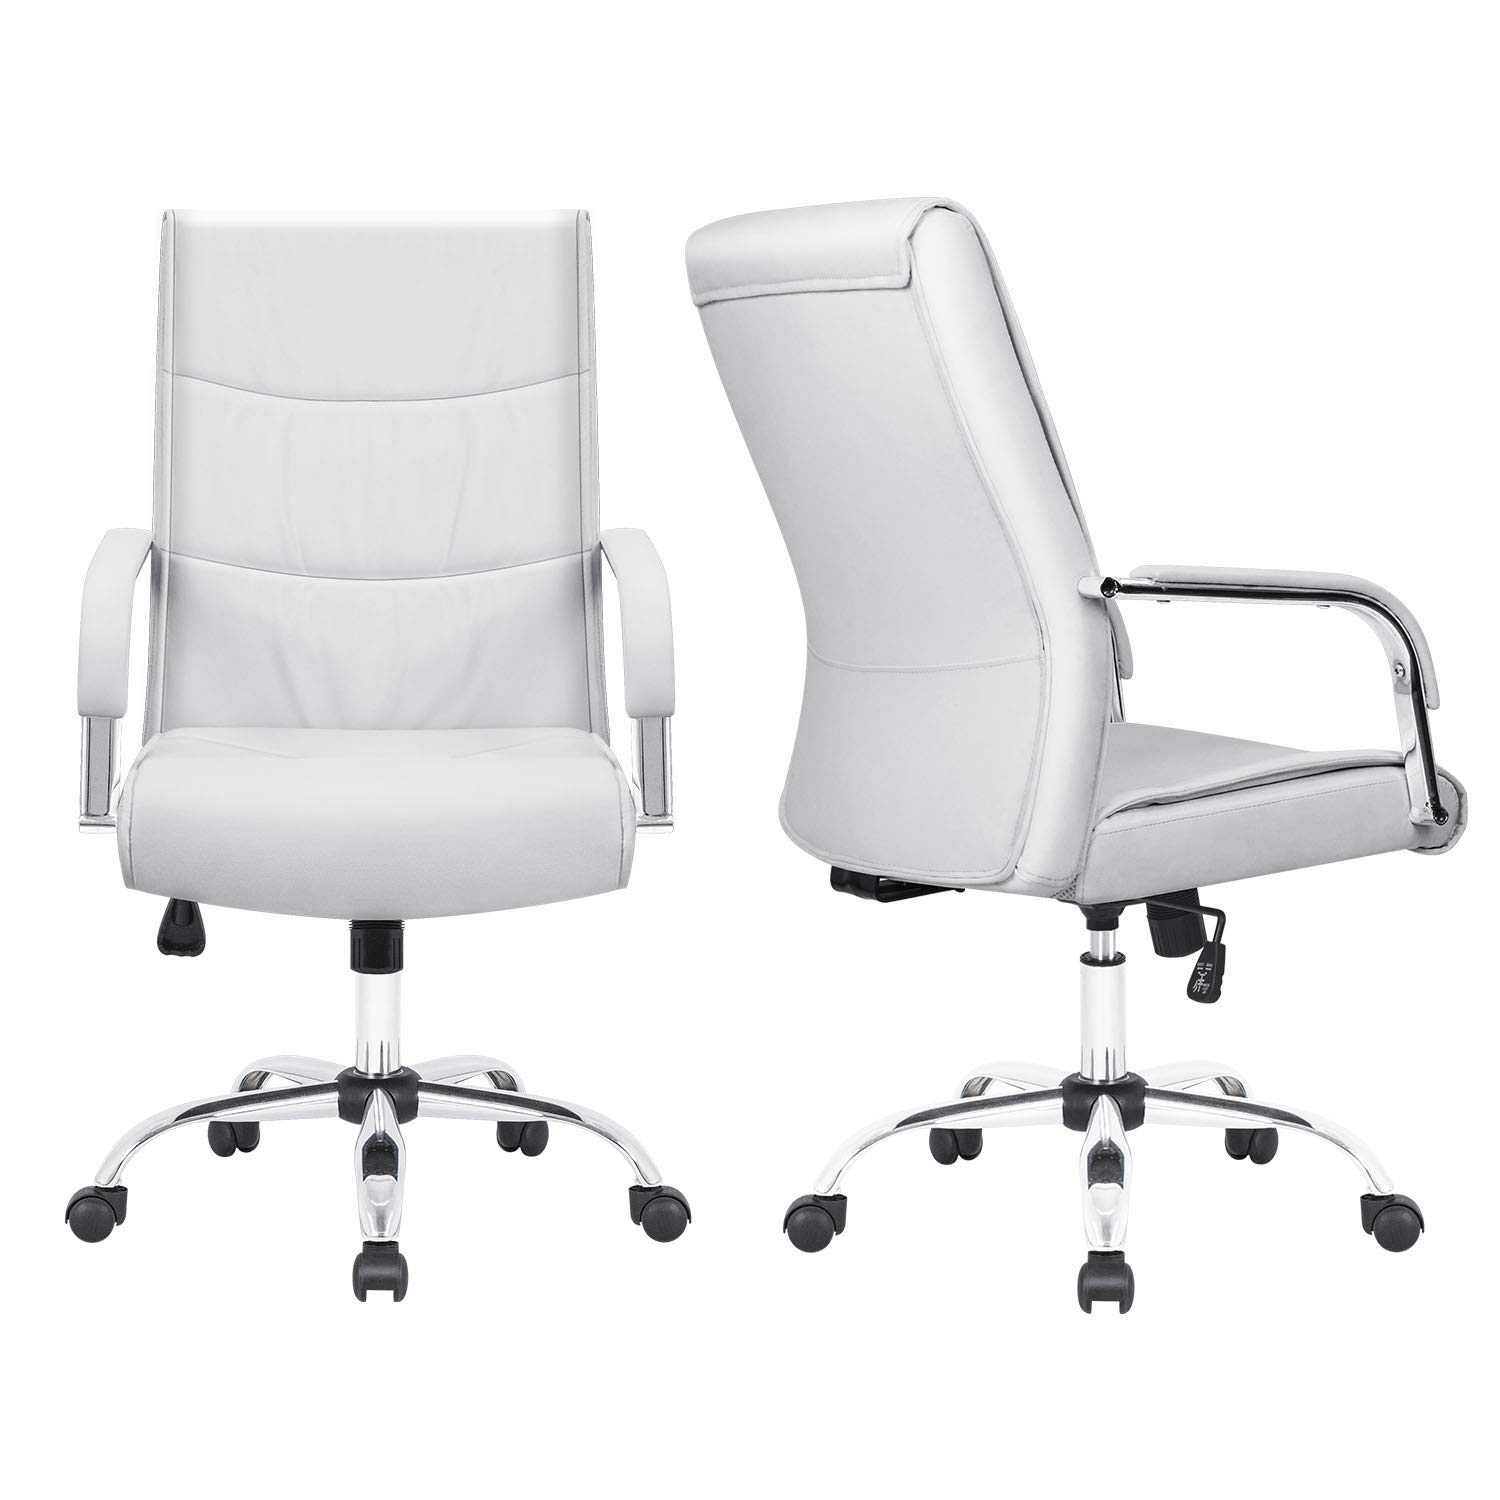 Furmax High Back Office Desk Chair Conference Leather Executive with Padded Armrests,Adjustable Ergonomic Swivel Task Chair with Lumbar Support(White) by Furmax (Image #2)